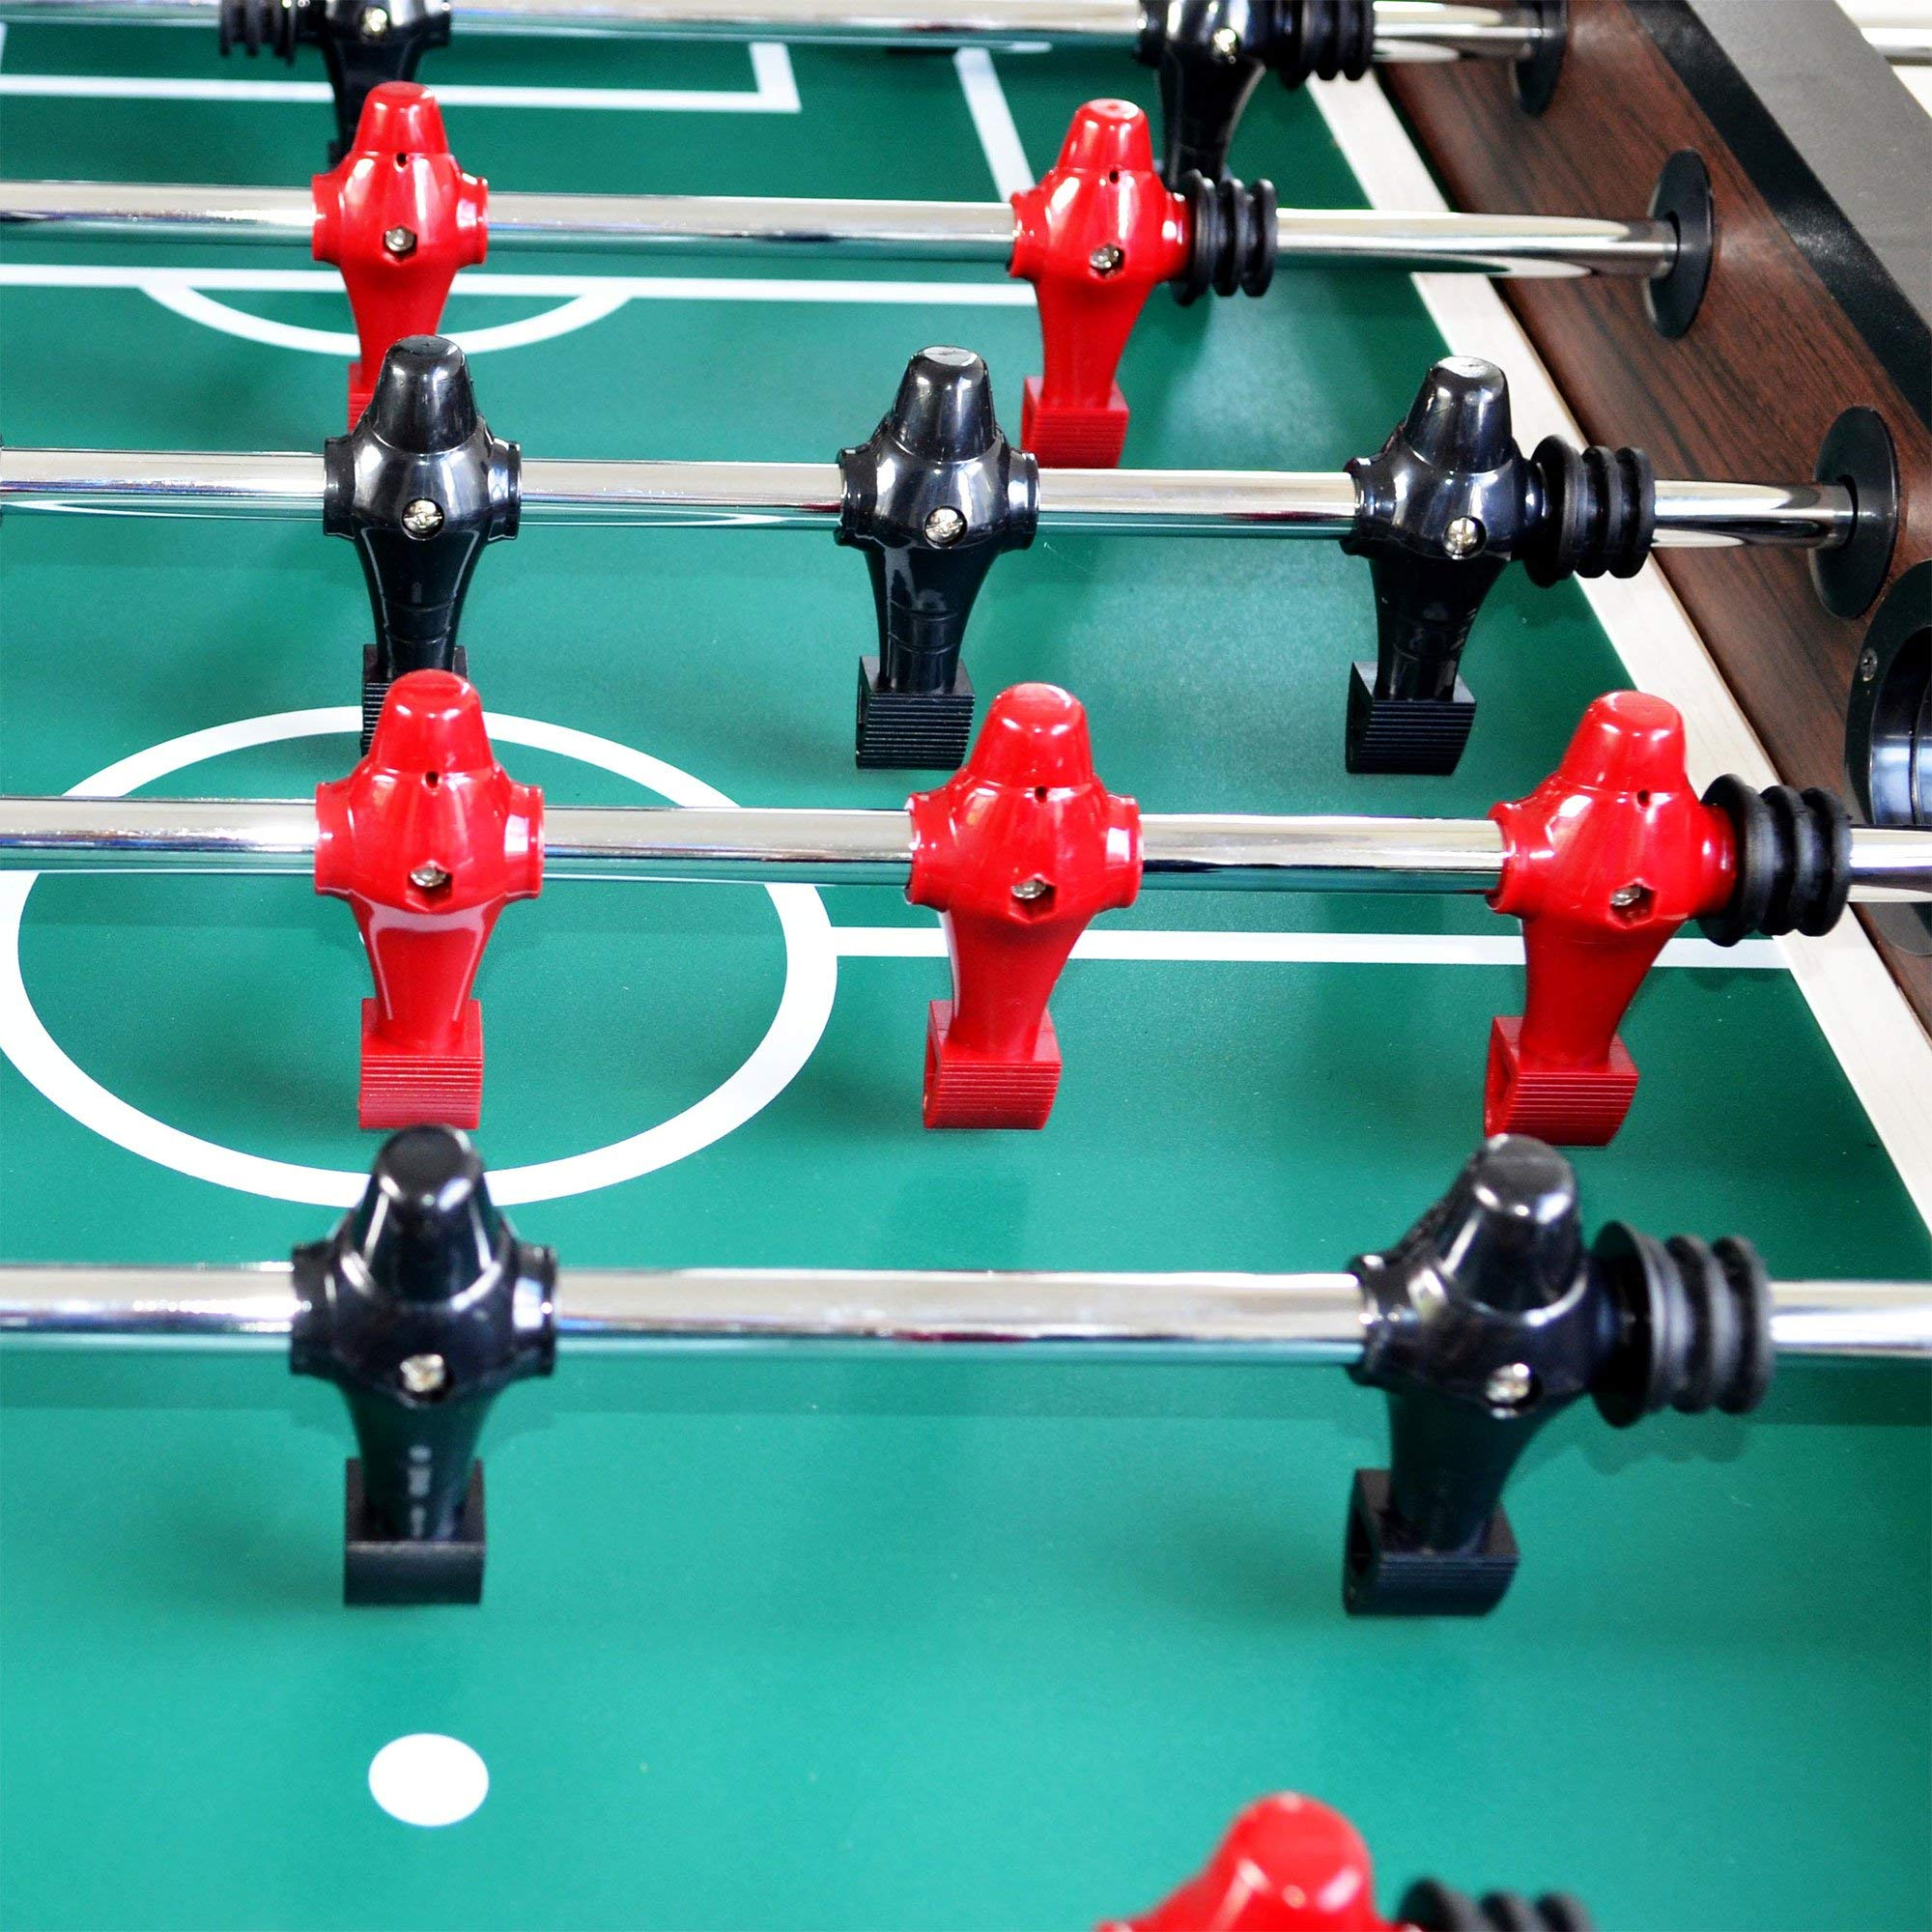 Lancaster 54-Inch Foosball Game Room Table by Lancaster Gaming Company (Image #6)